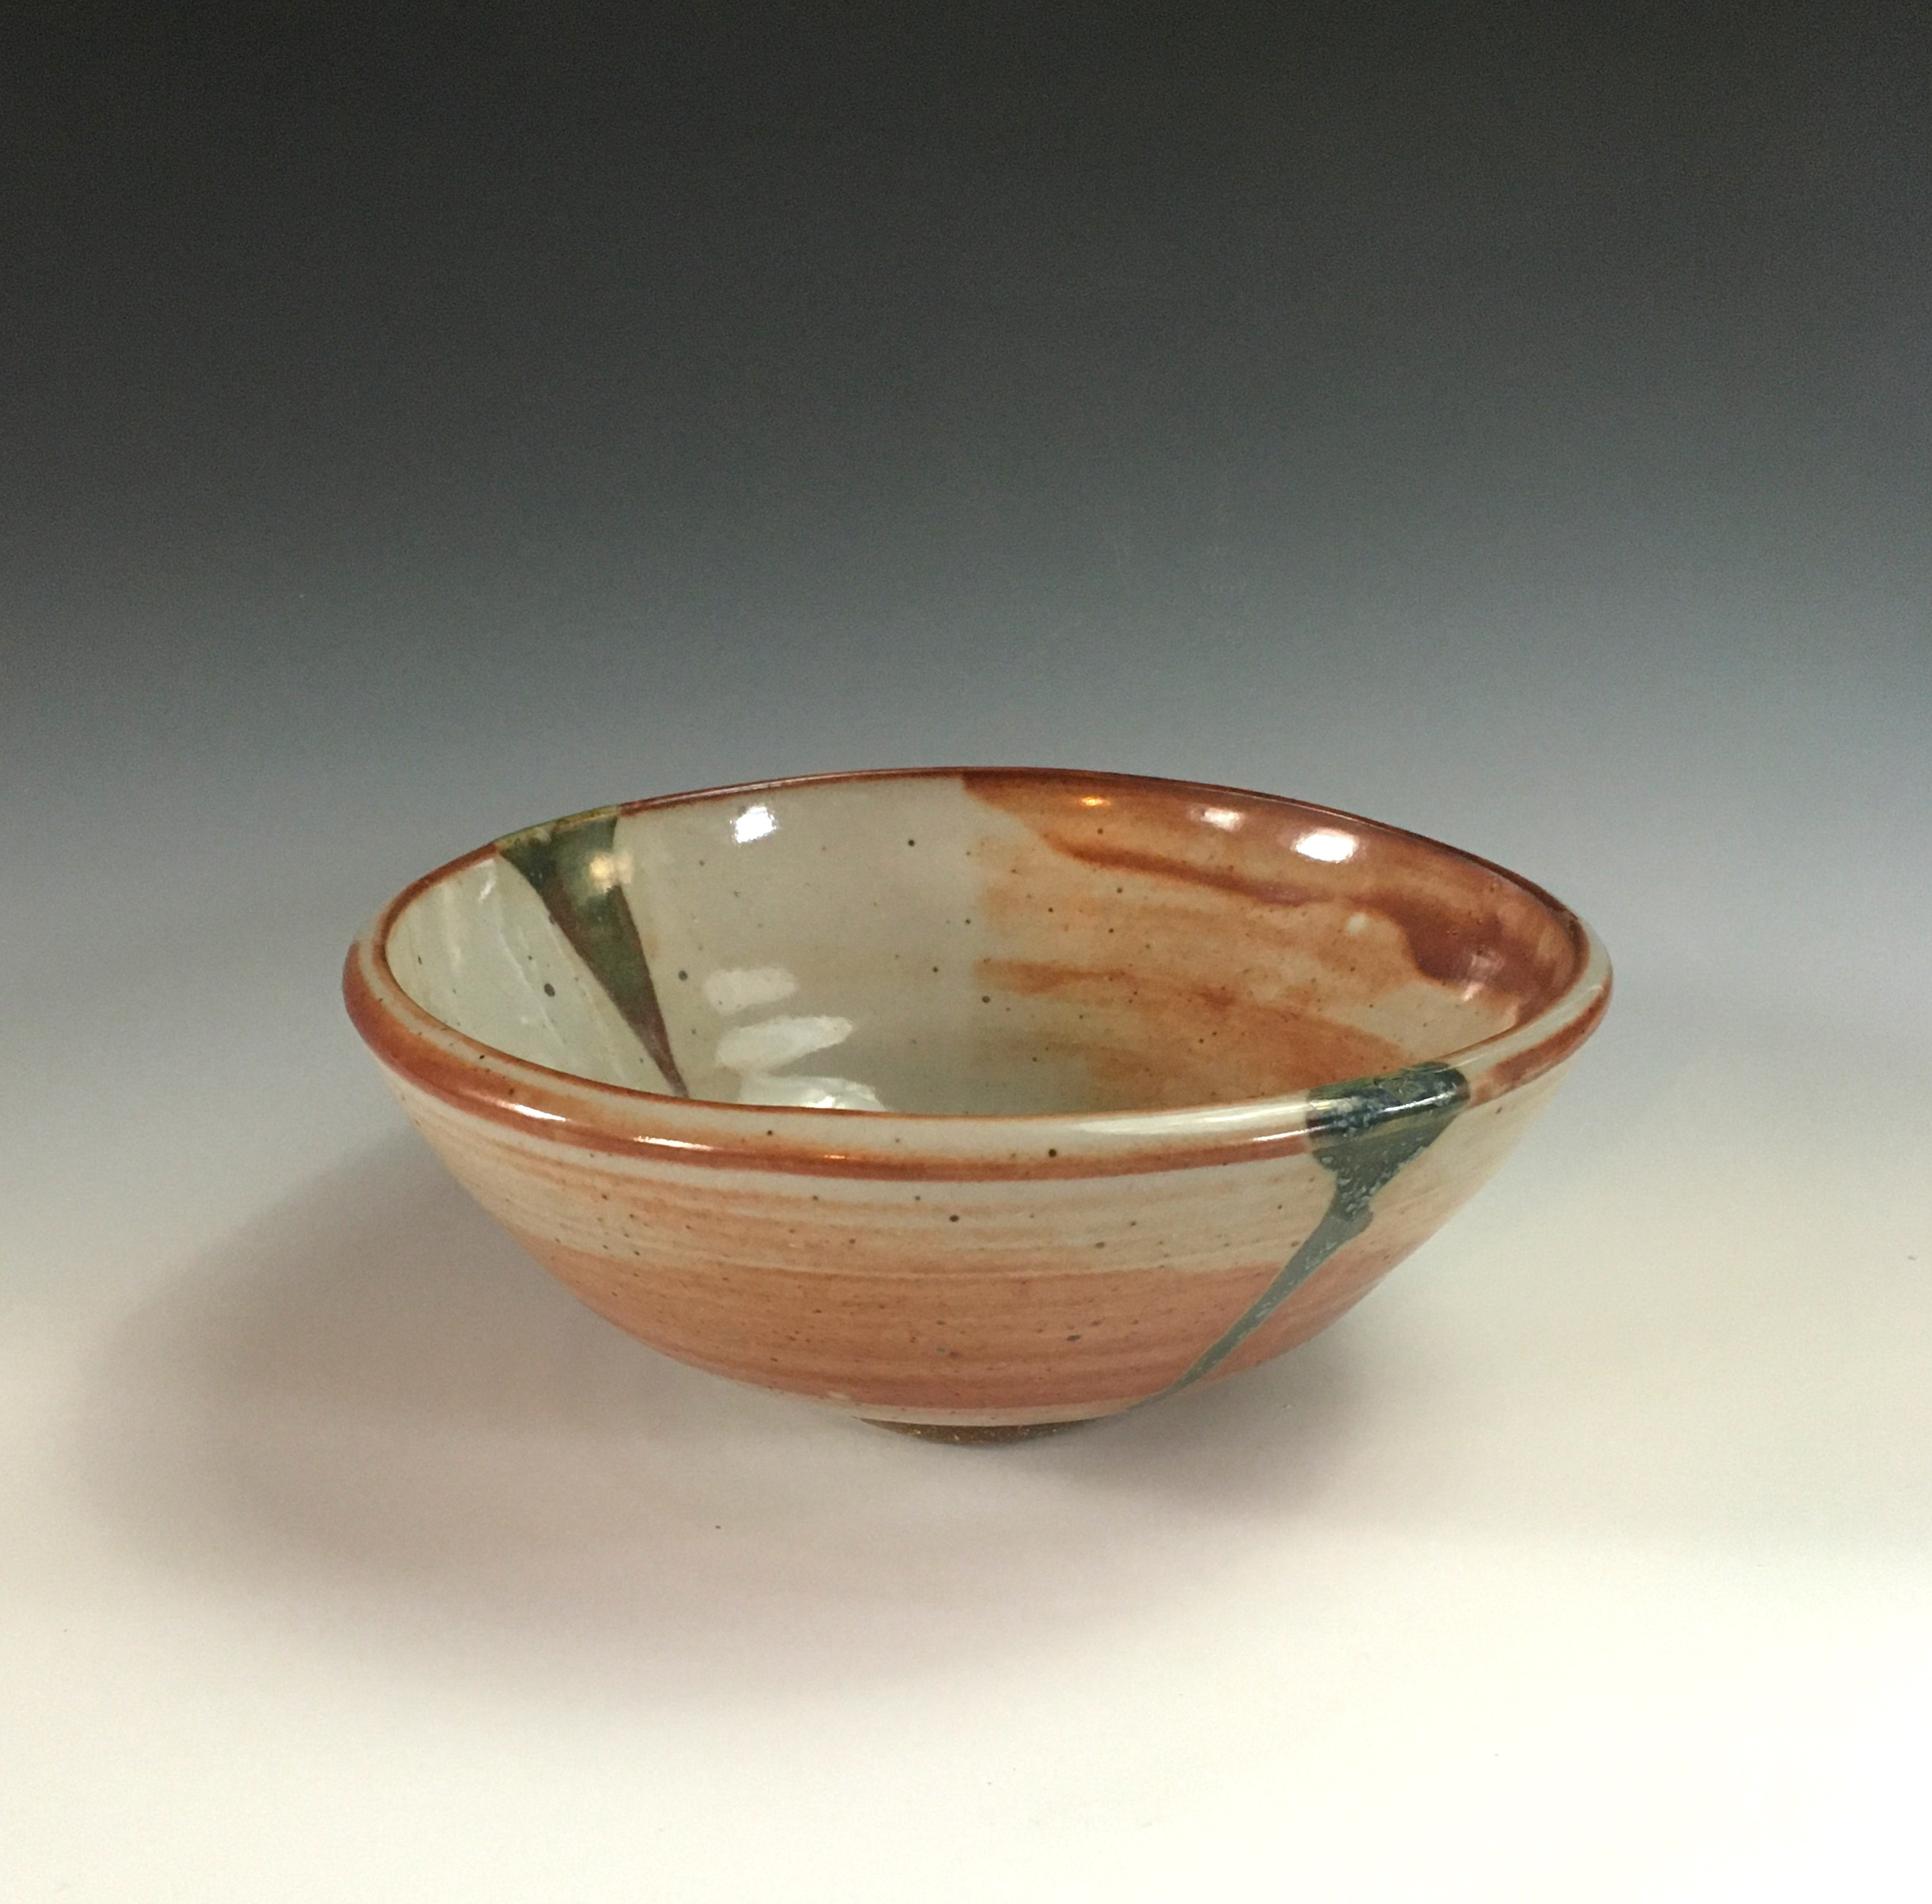 Bowl-Lg-orange:oribe